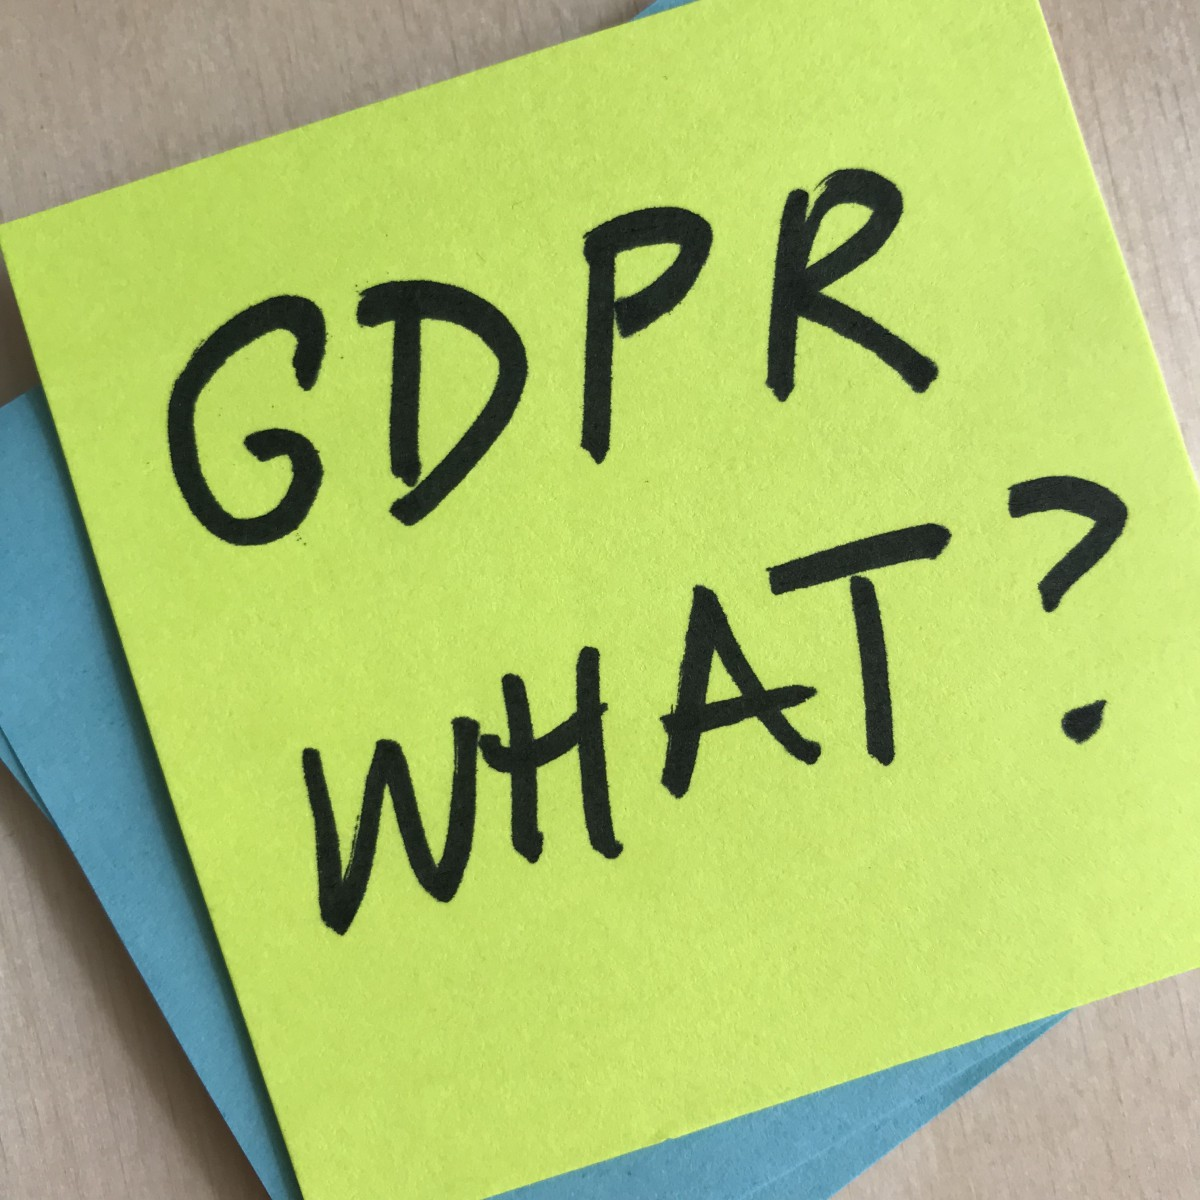 We missed the GDPR deadline. How do I update my content?